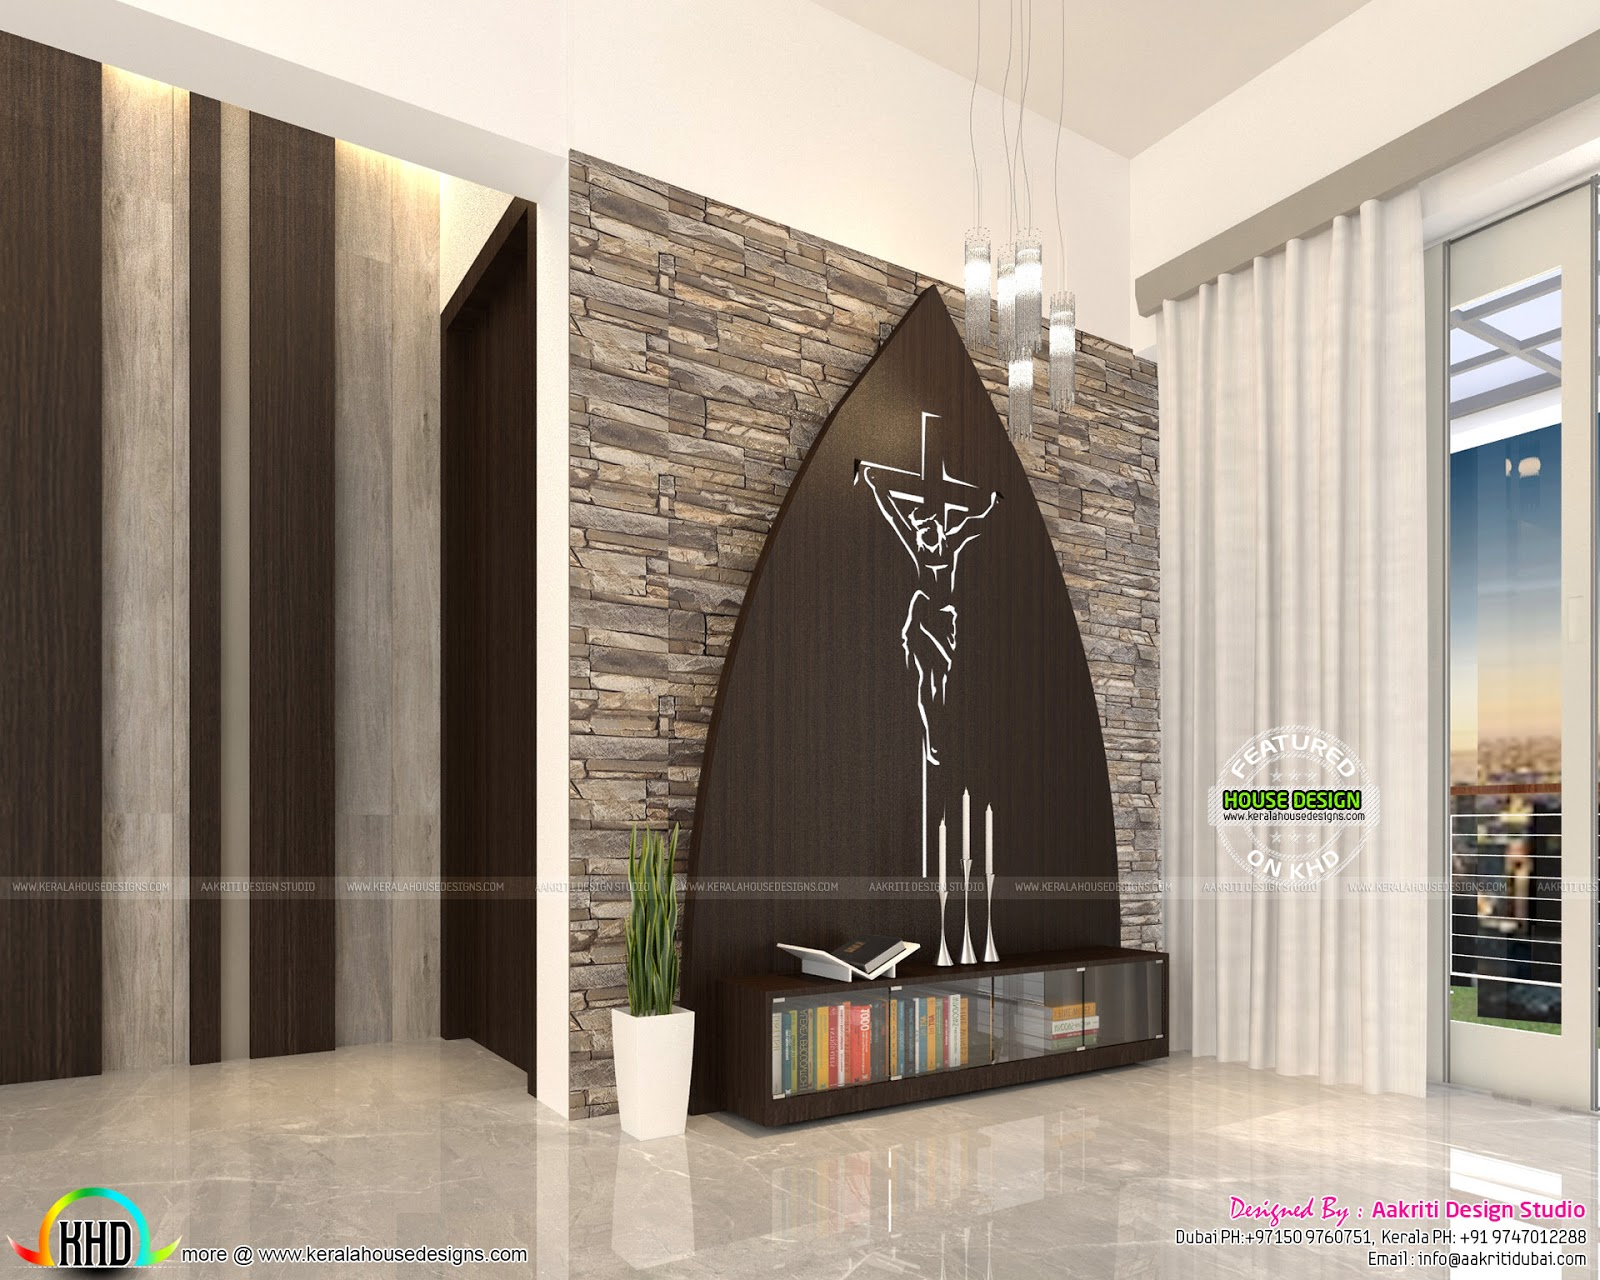 Flat interior designs in kerala kerala home design and for Interior design ideas for small homes in kerala